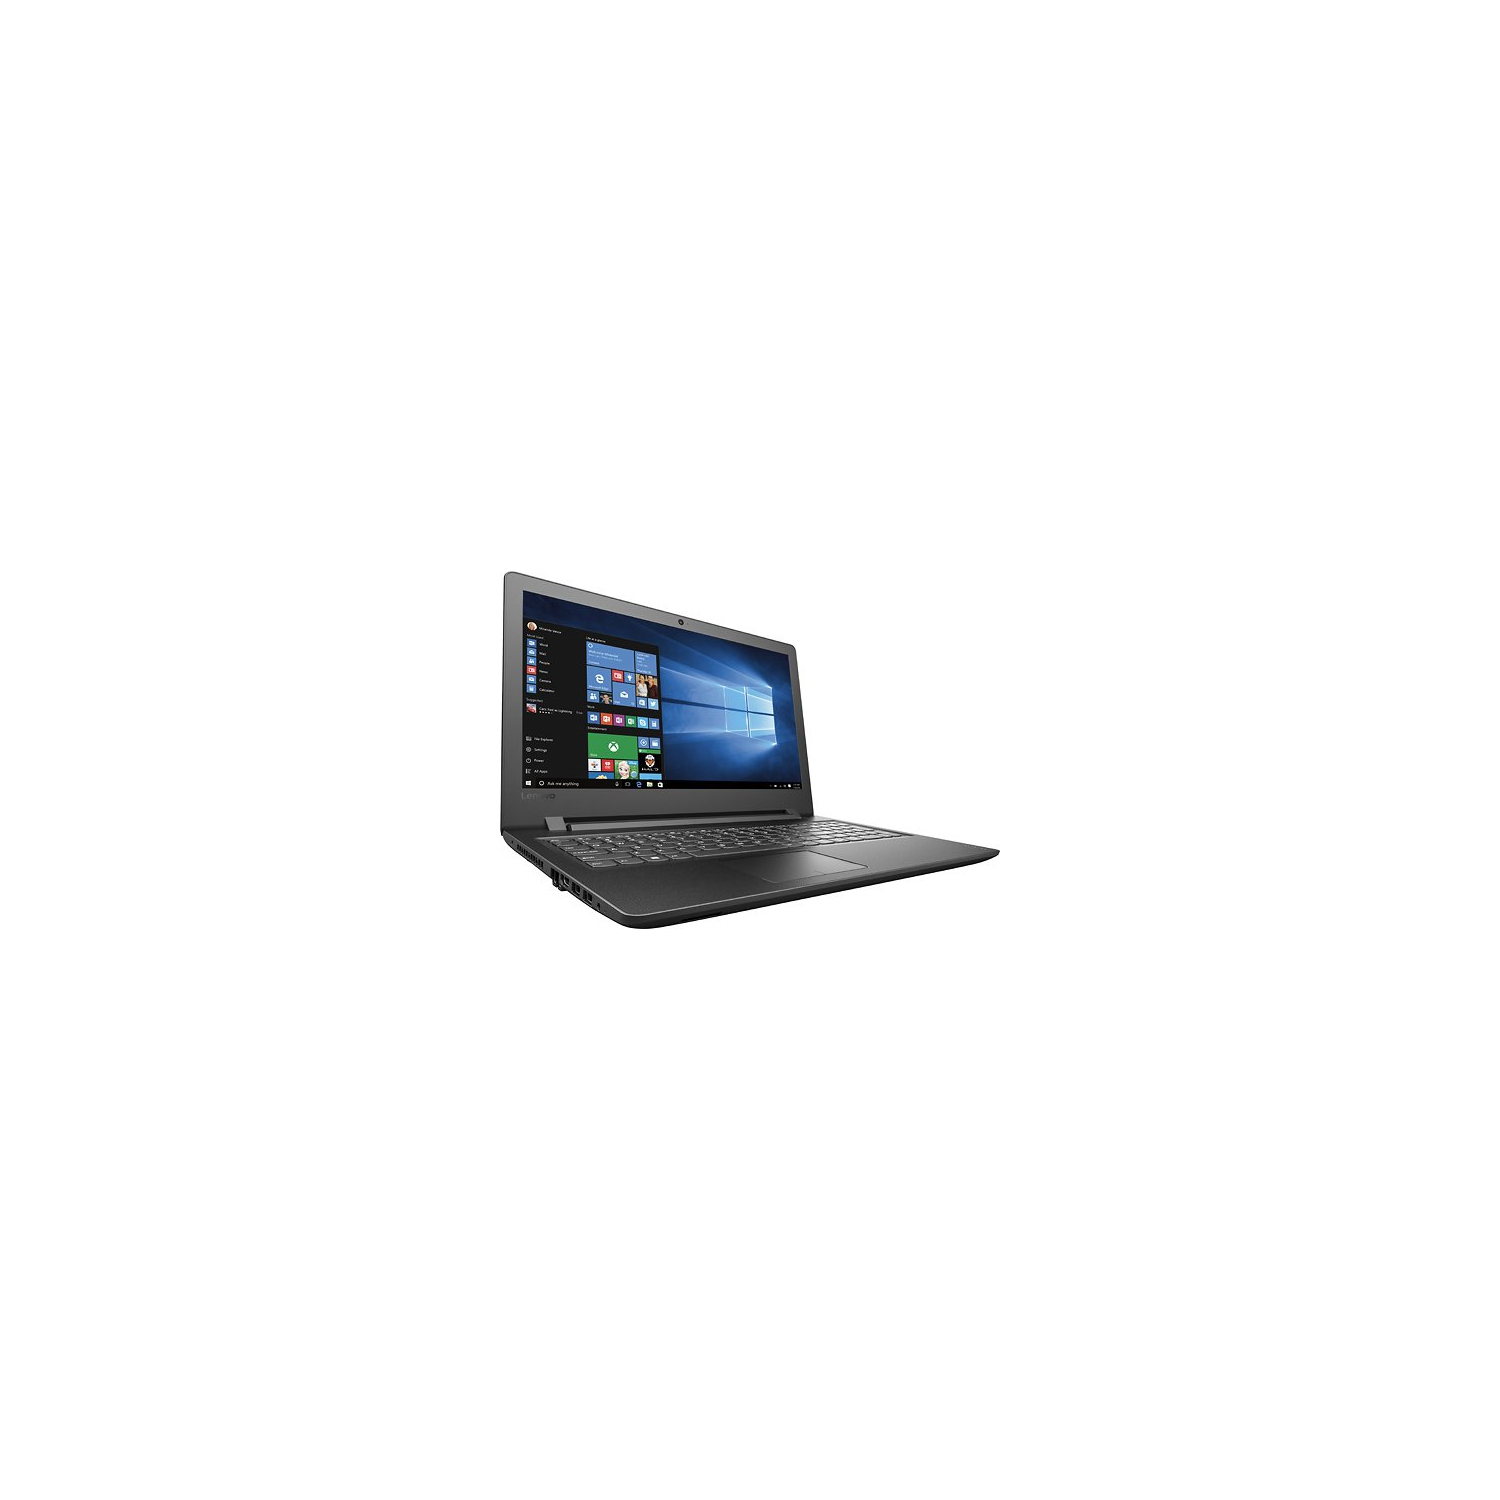 Lenovo V110 15isk 80tl008sus 156 Notebook Intel Core I3 6th Gen With 6100u Dual 2 230 Ghz New Open Box Laptops Best Buy Canada